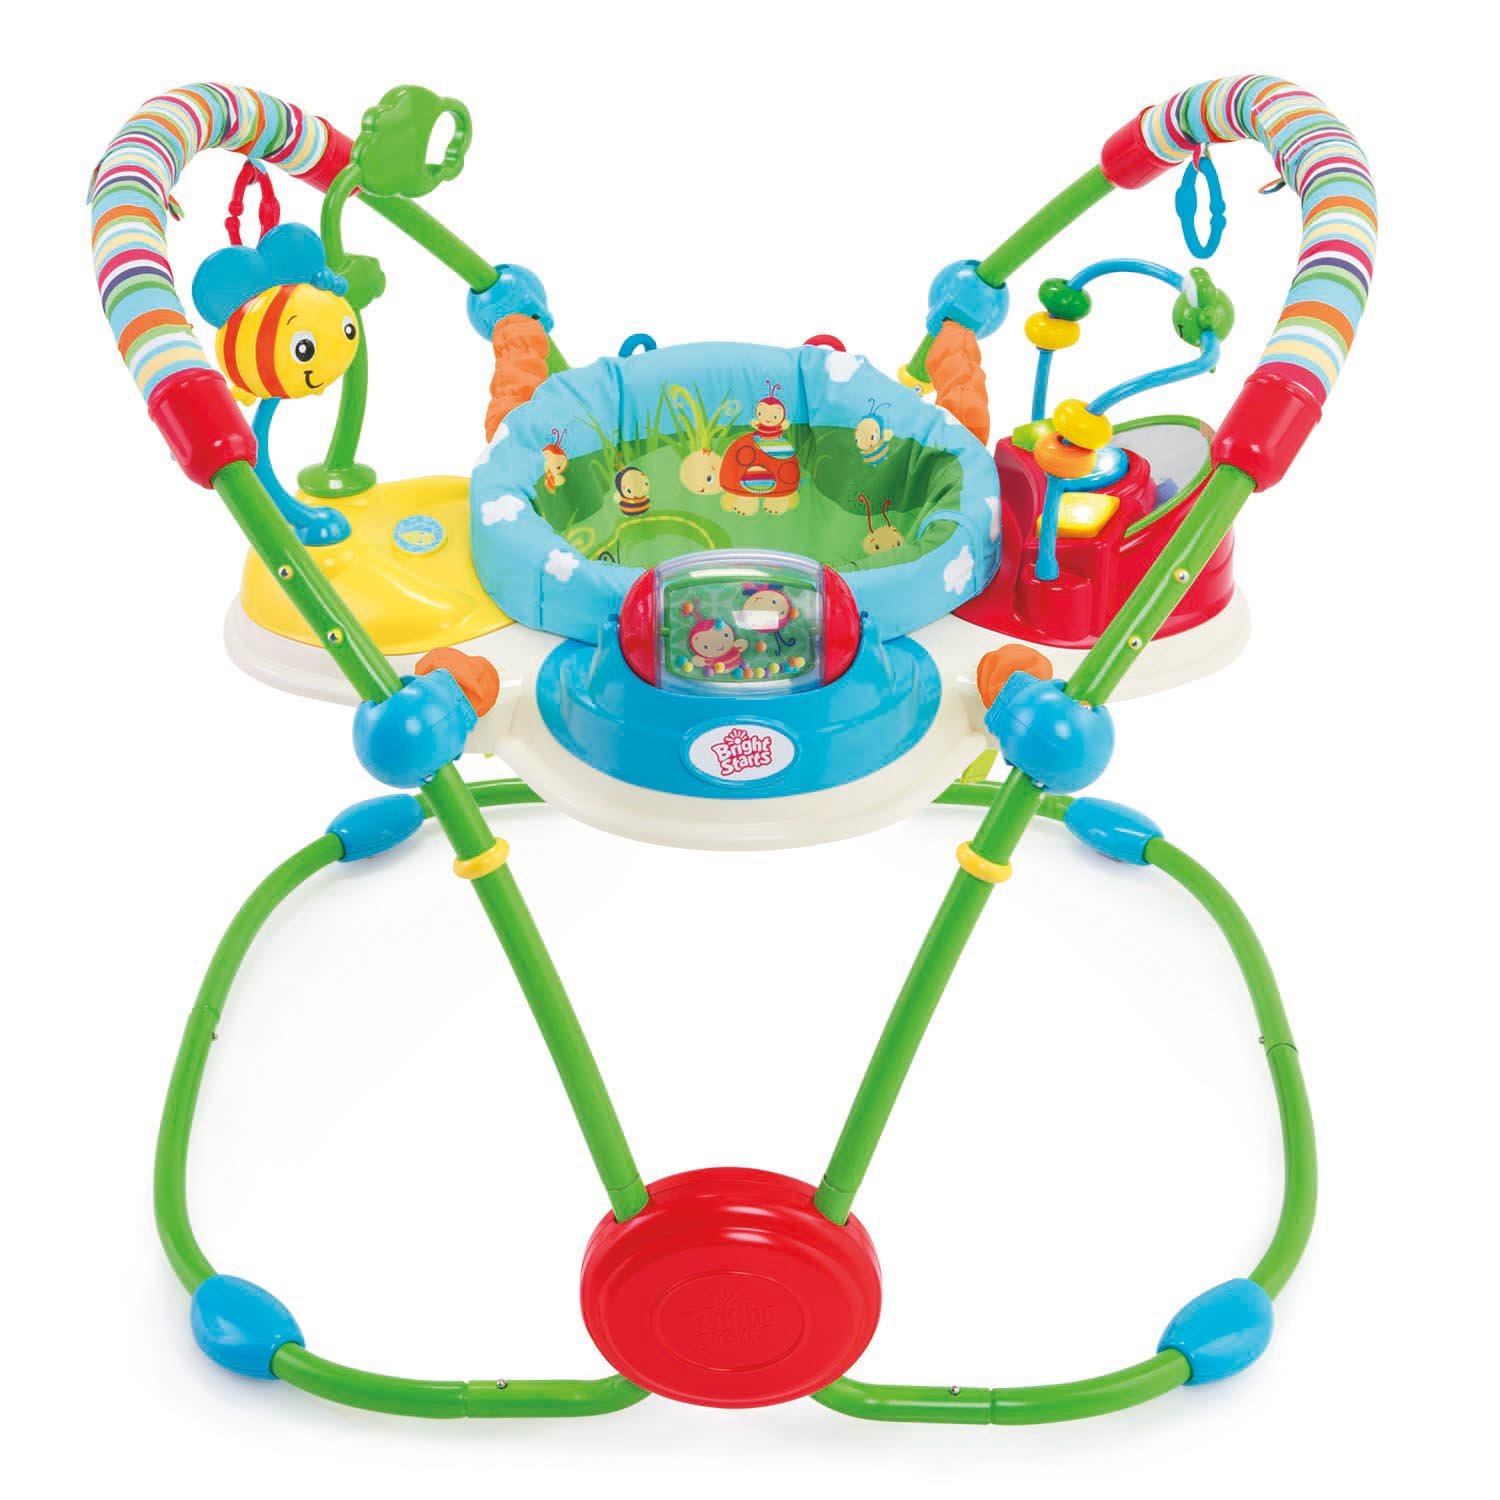 Bright Starts Activity Jumper Giggle Bugs Amazon Baby